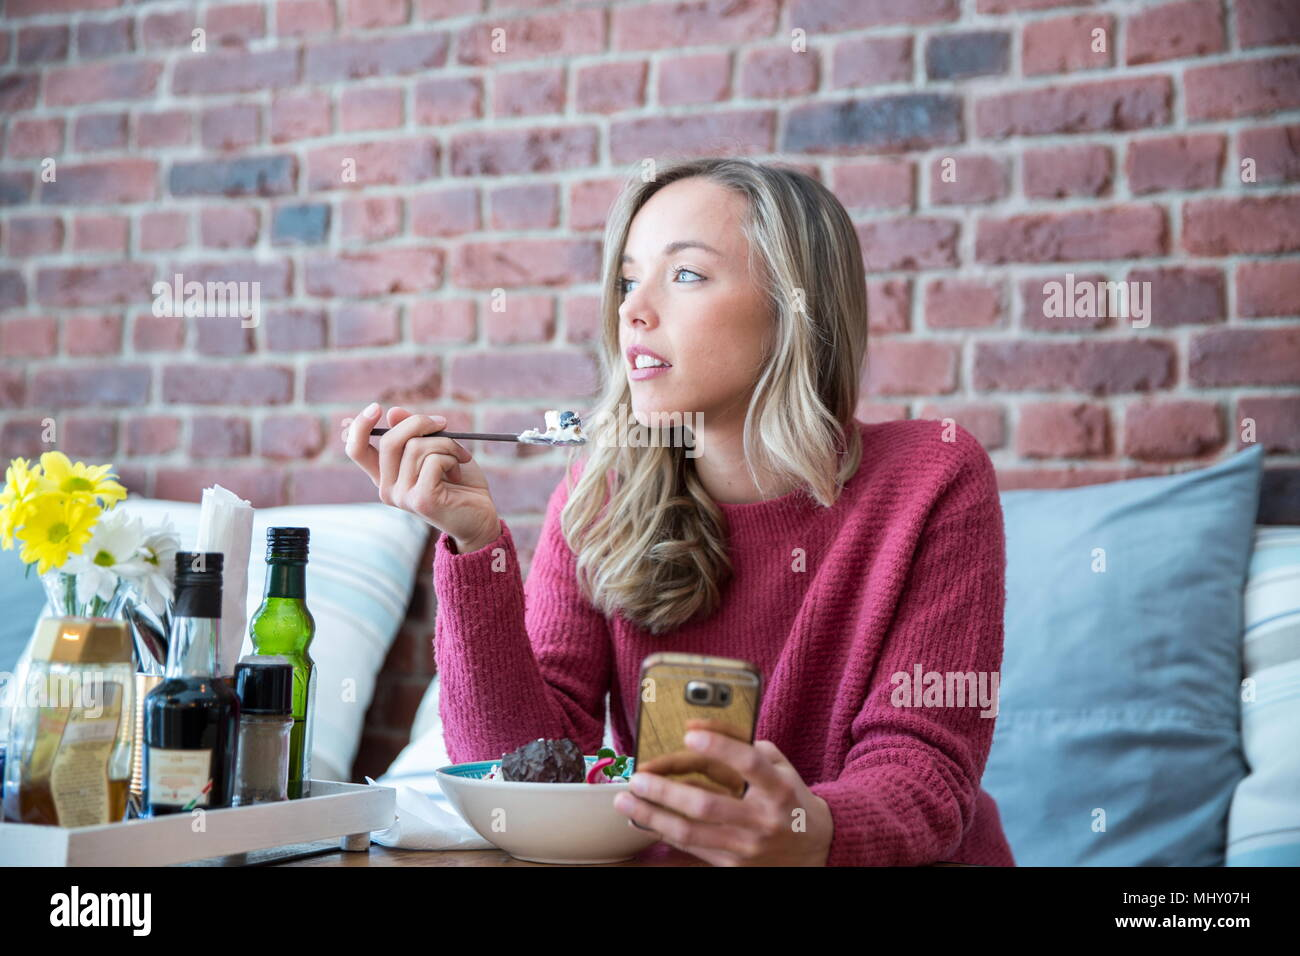 Woman sitting in cafe, eating bowl of muesli, holding smartphone - Stock Image